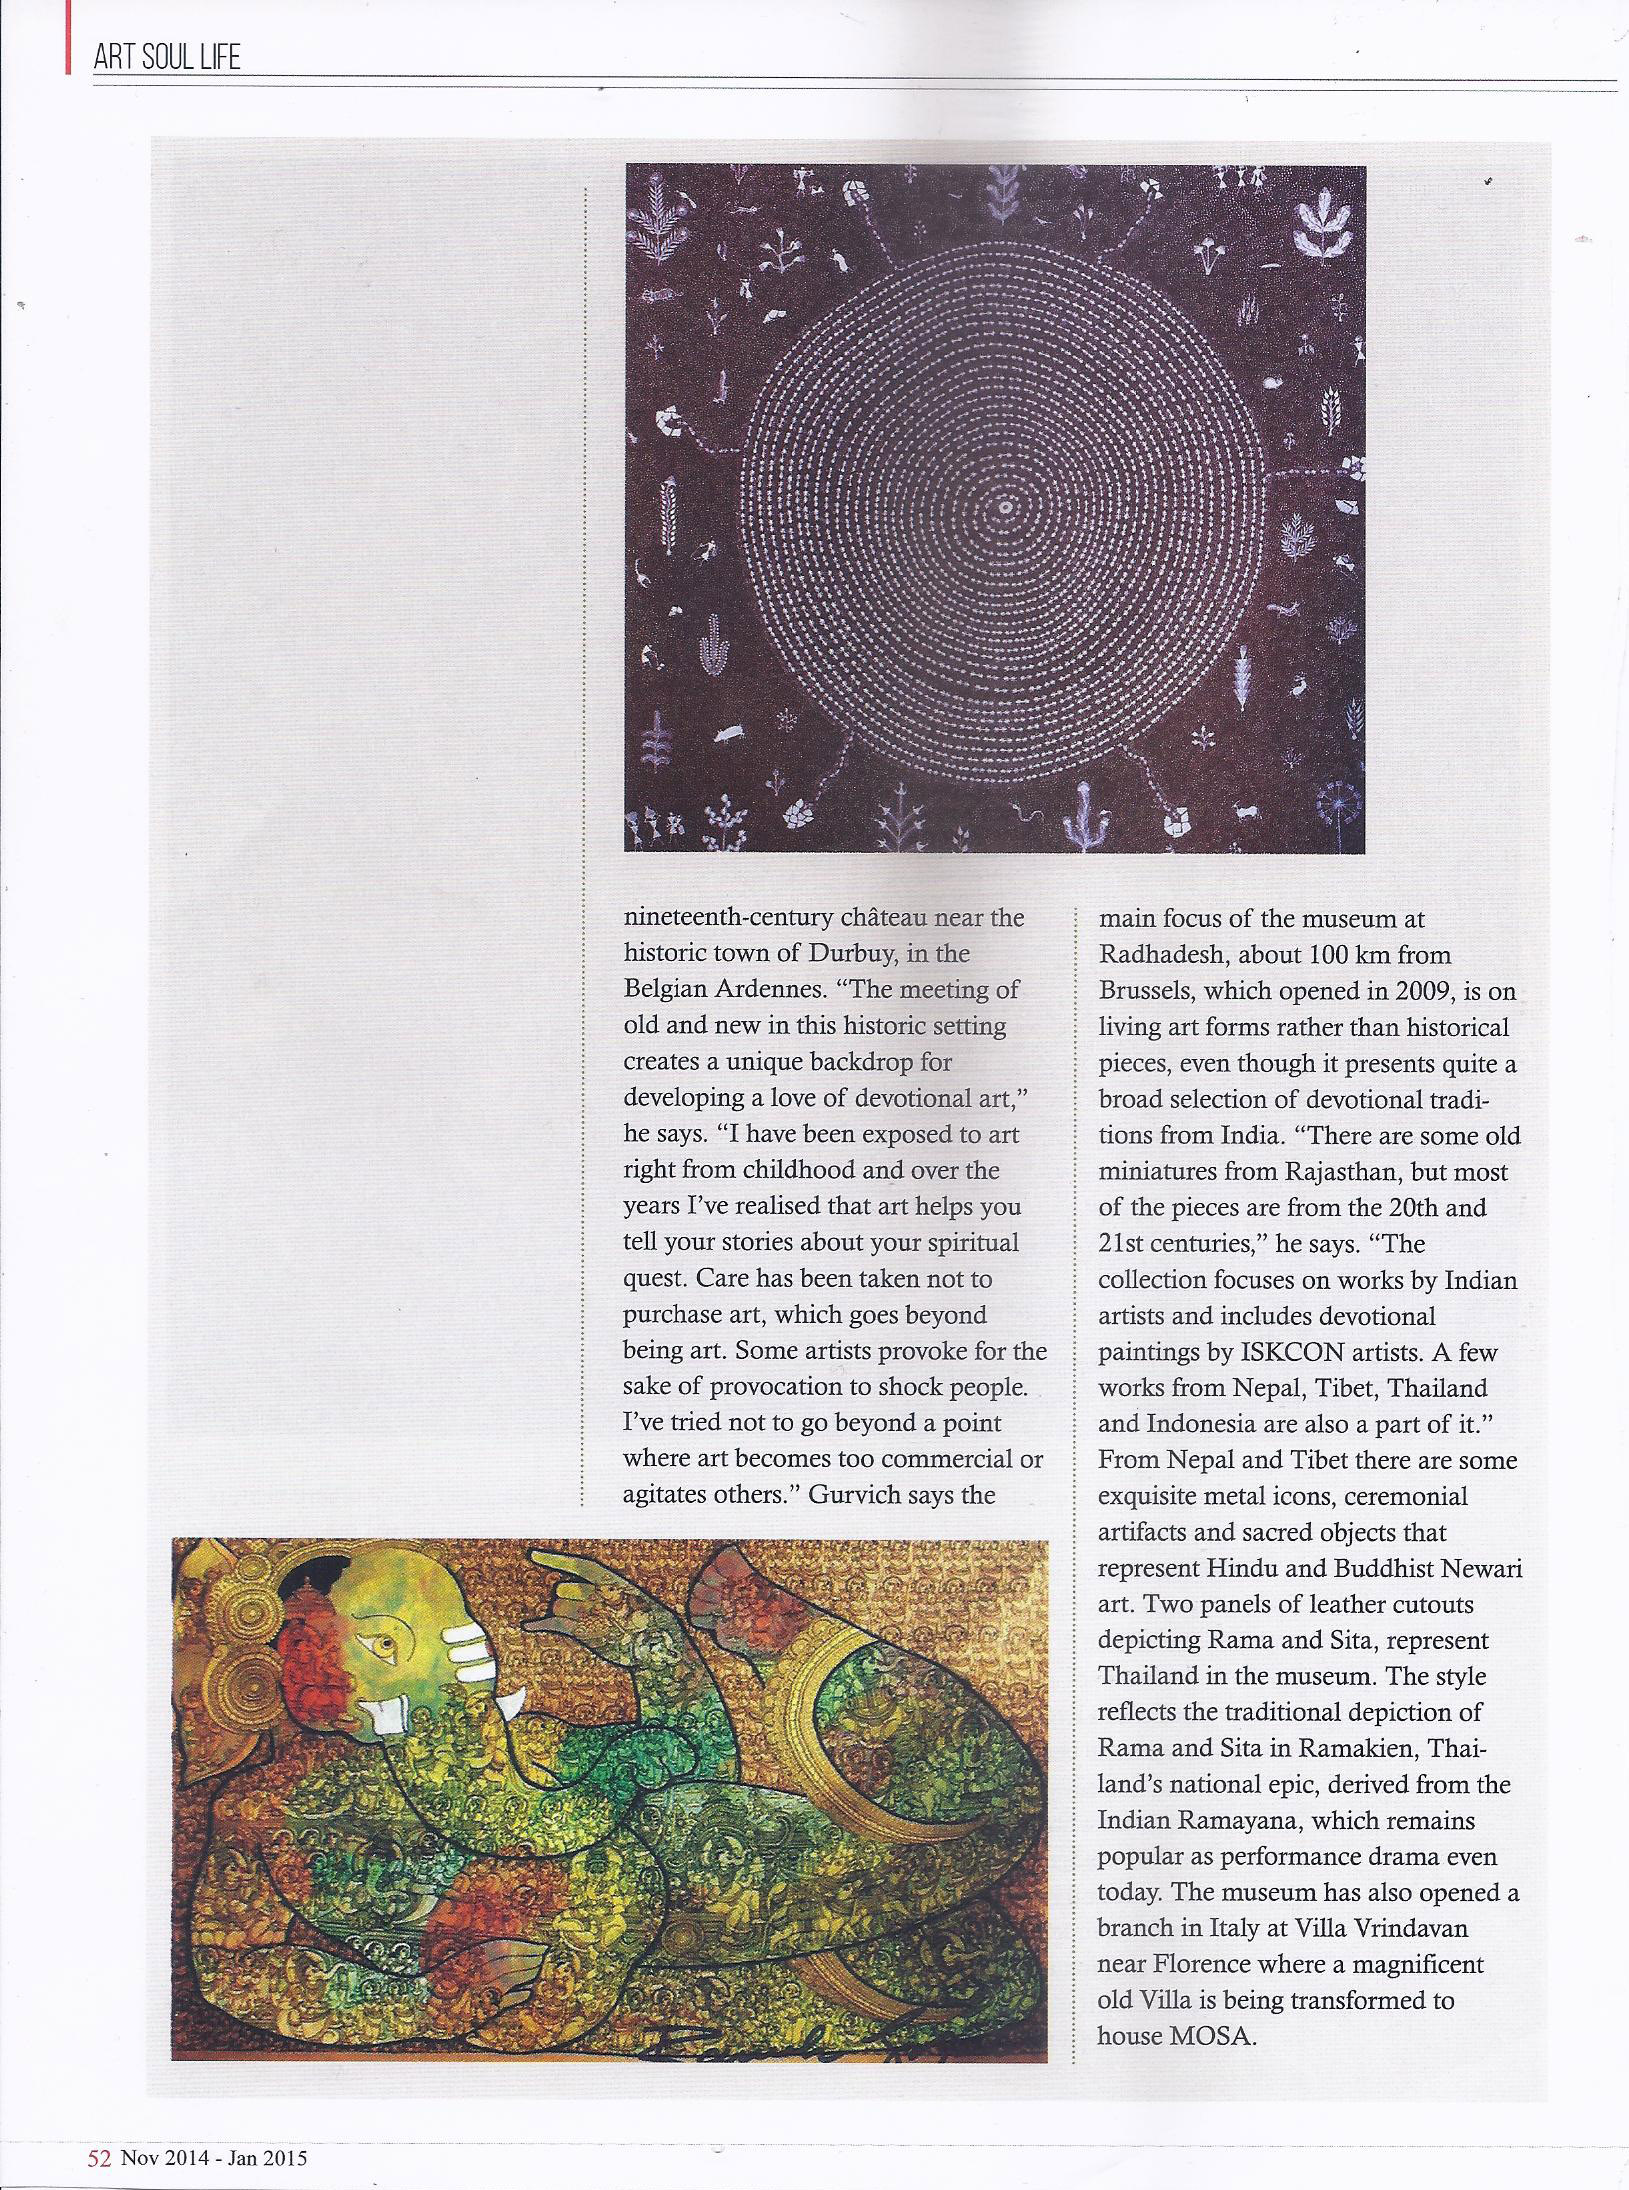 Art Soul Life (National Edition November 2014 - January 2015 Issue)- For the love of god Pg-7